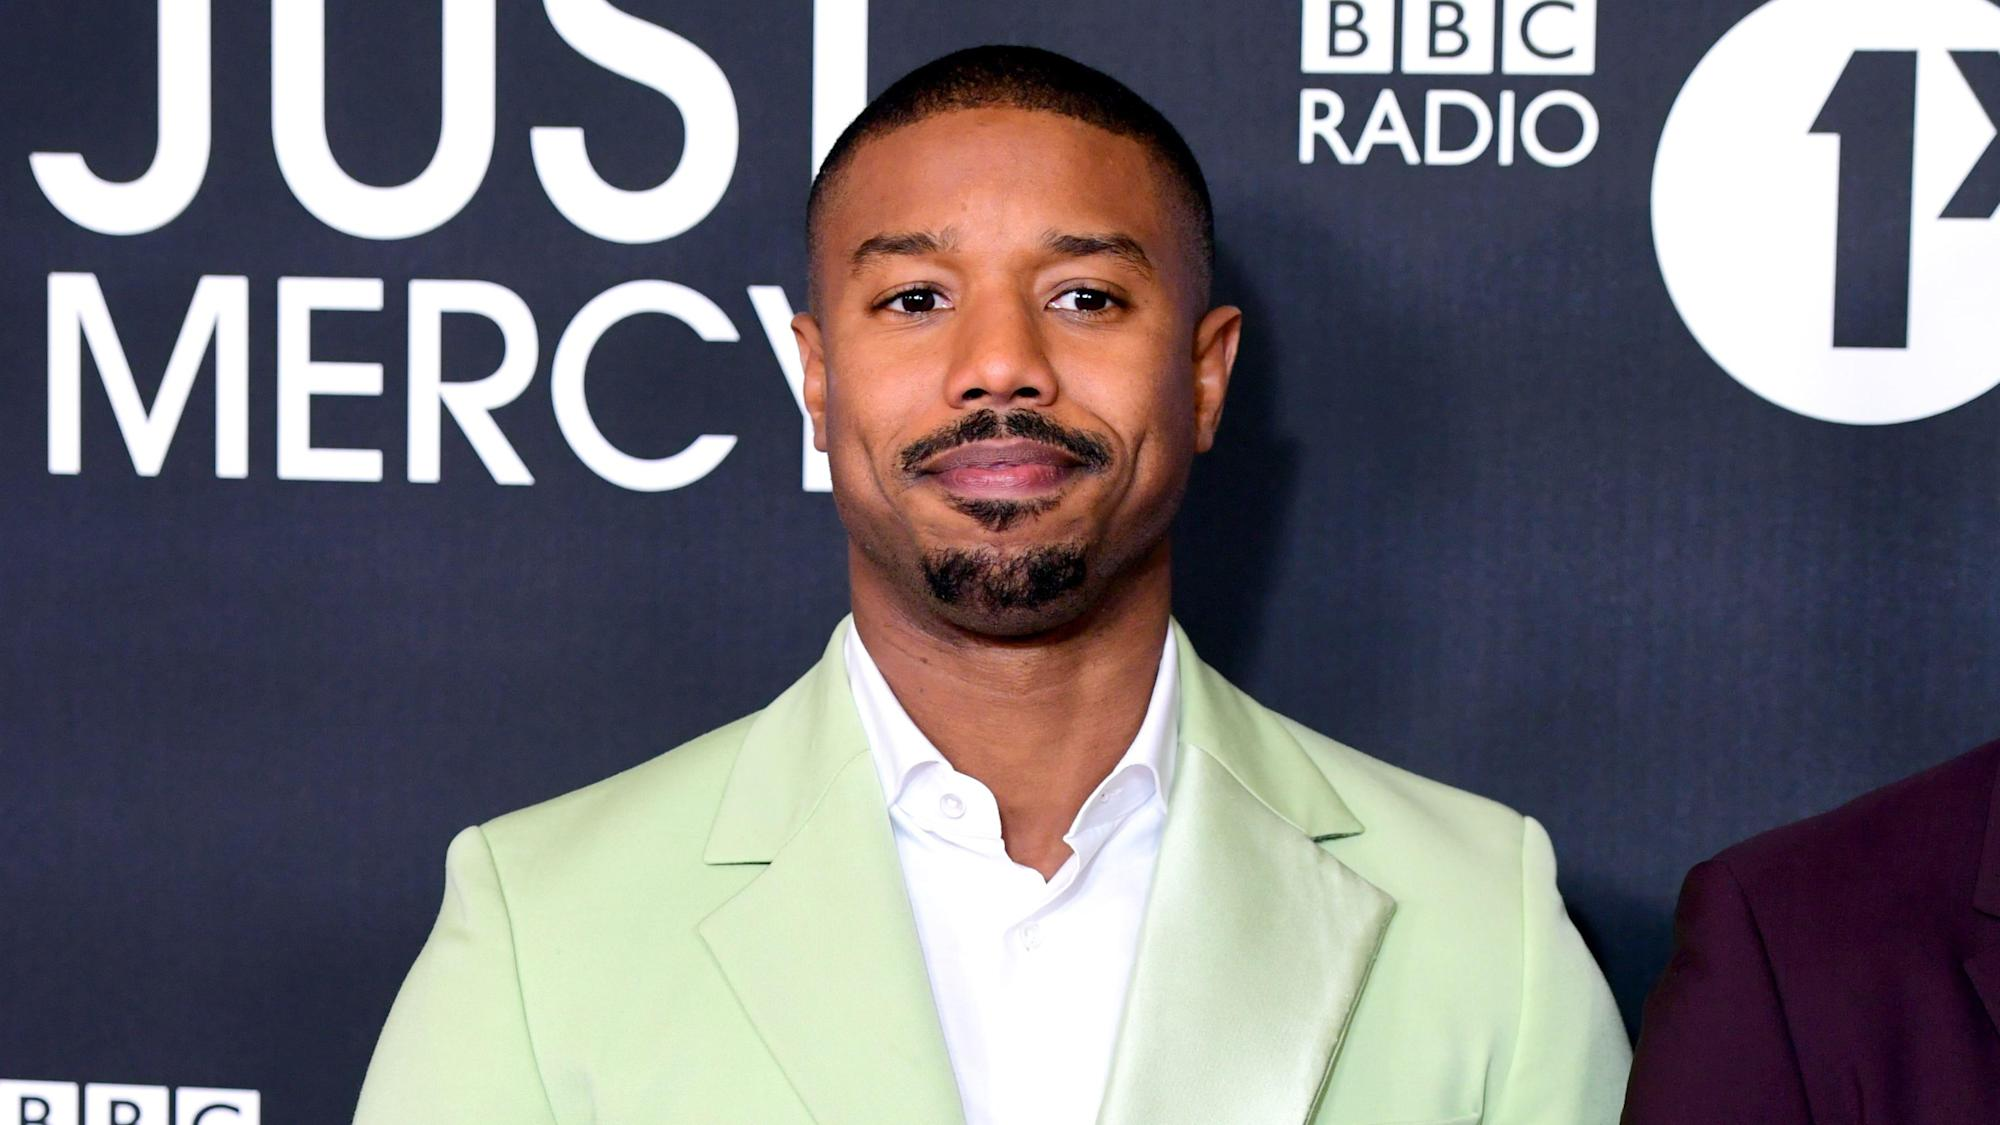 Michael B Jordan: I've become less concerned about criticism of my work